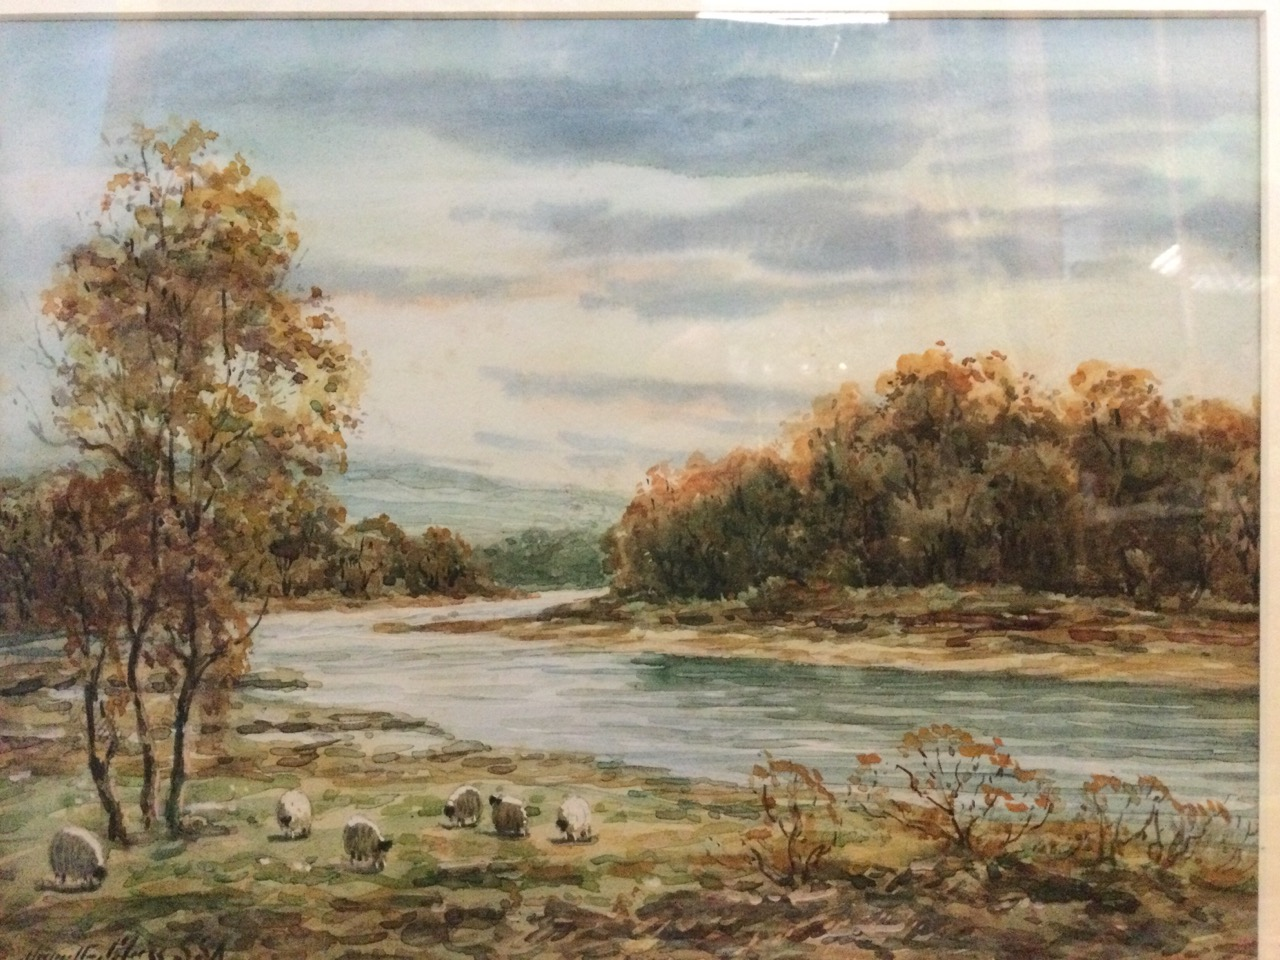 Hamilton Glass, watercolour, river landscape with sheep in foreground, signed, mounted & gilt - Image 3 of 3